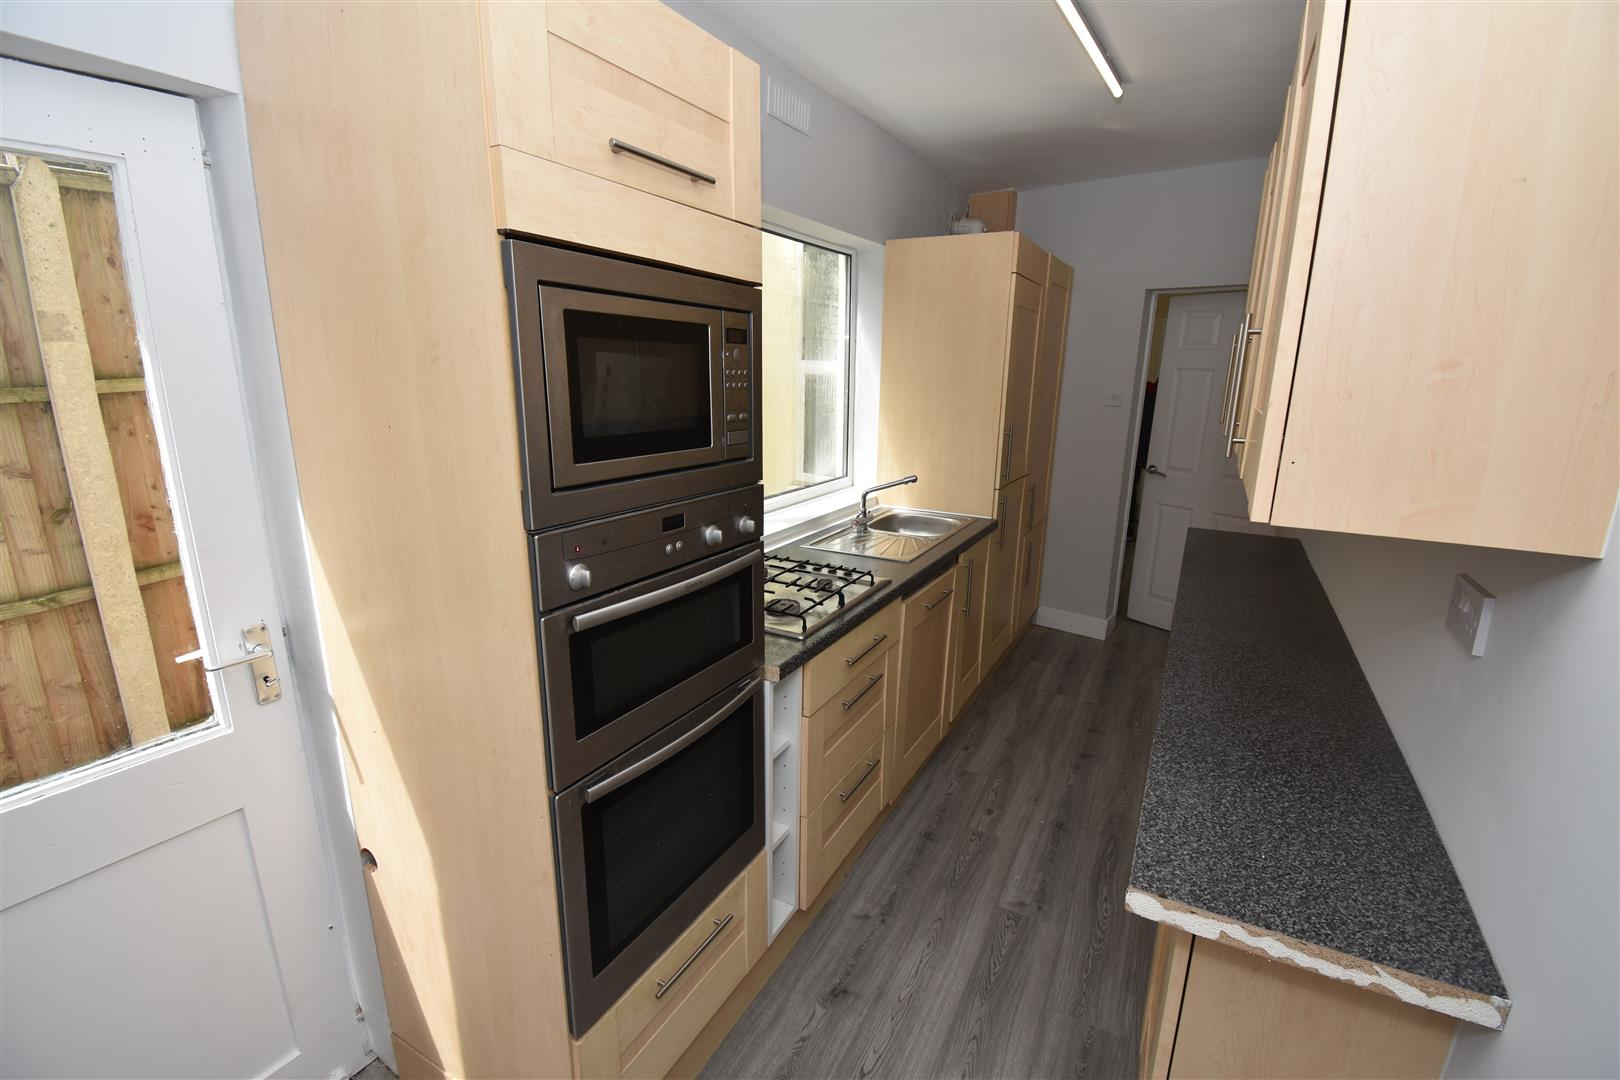 3 bed house for sale in Asquith Road, Ward End, Birmingham 6